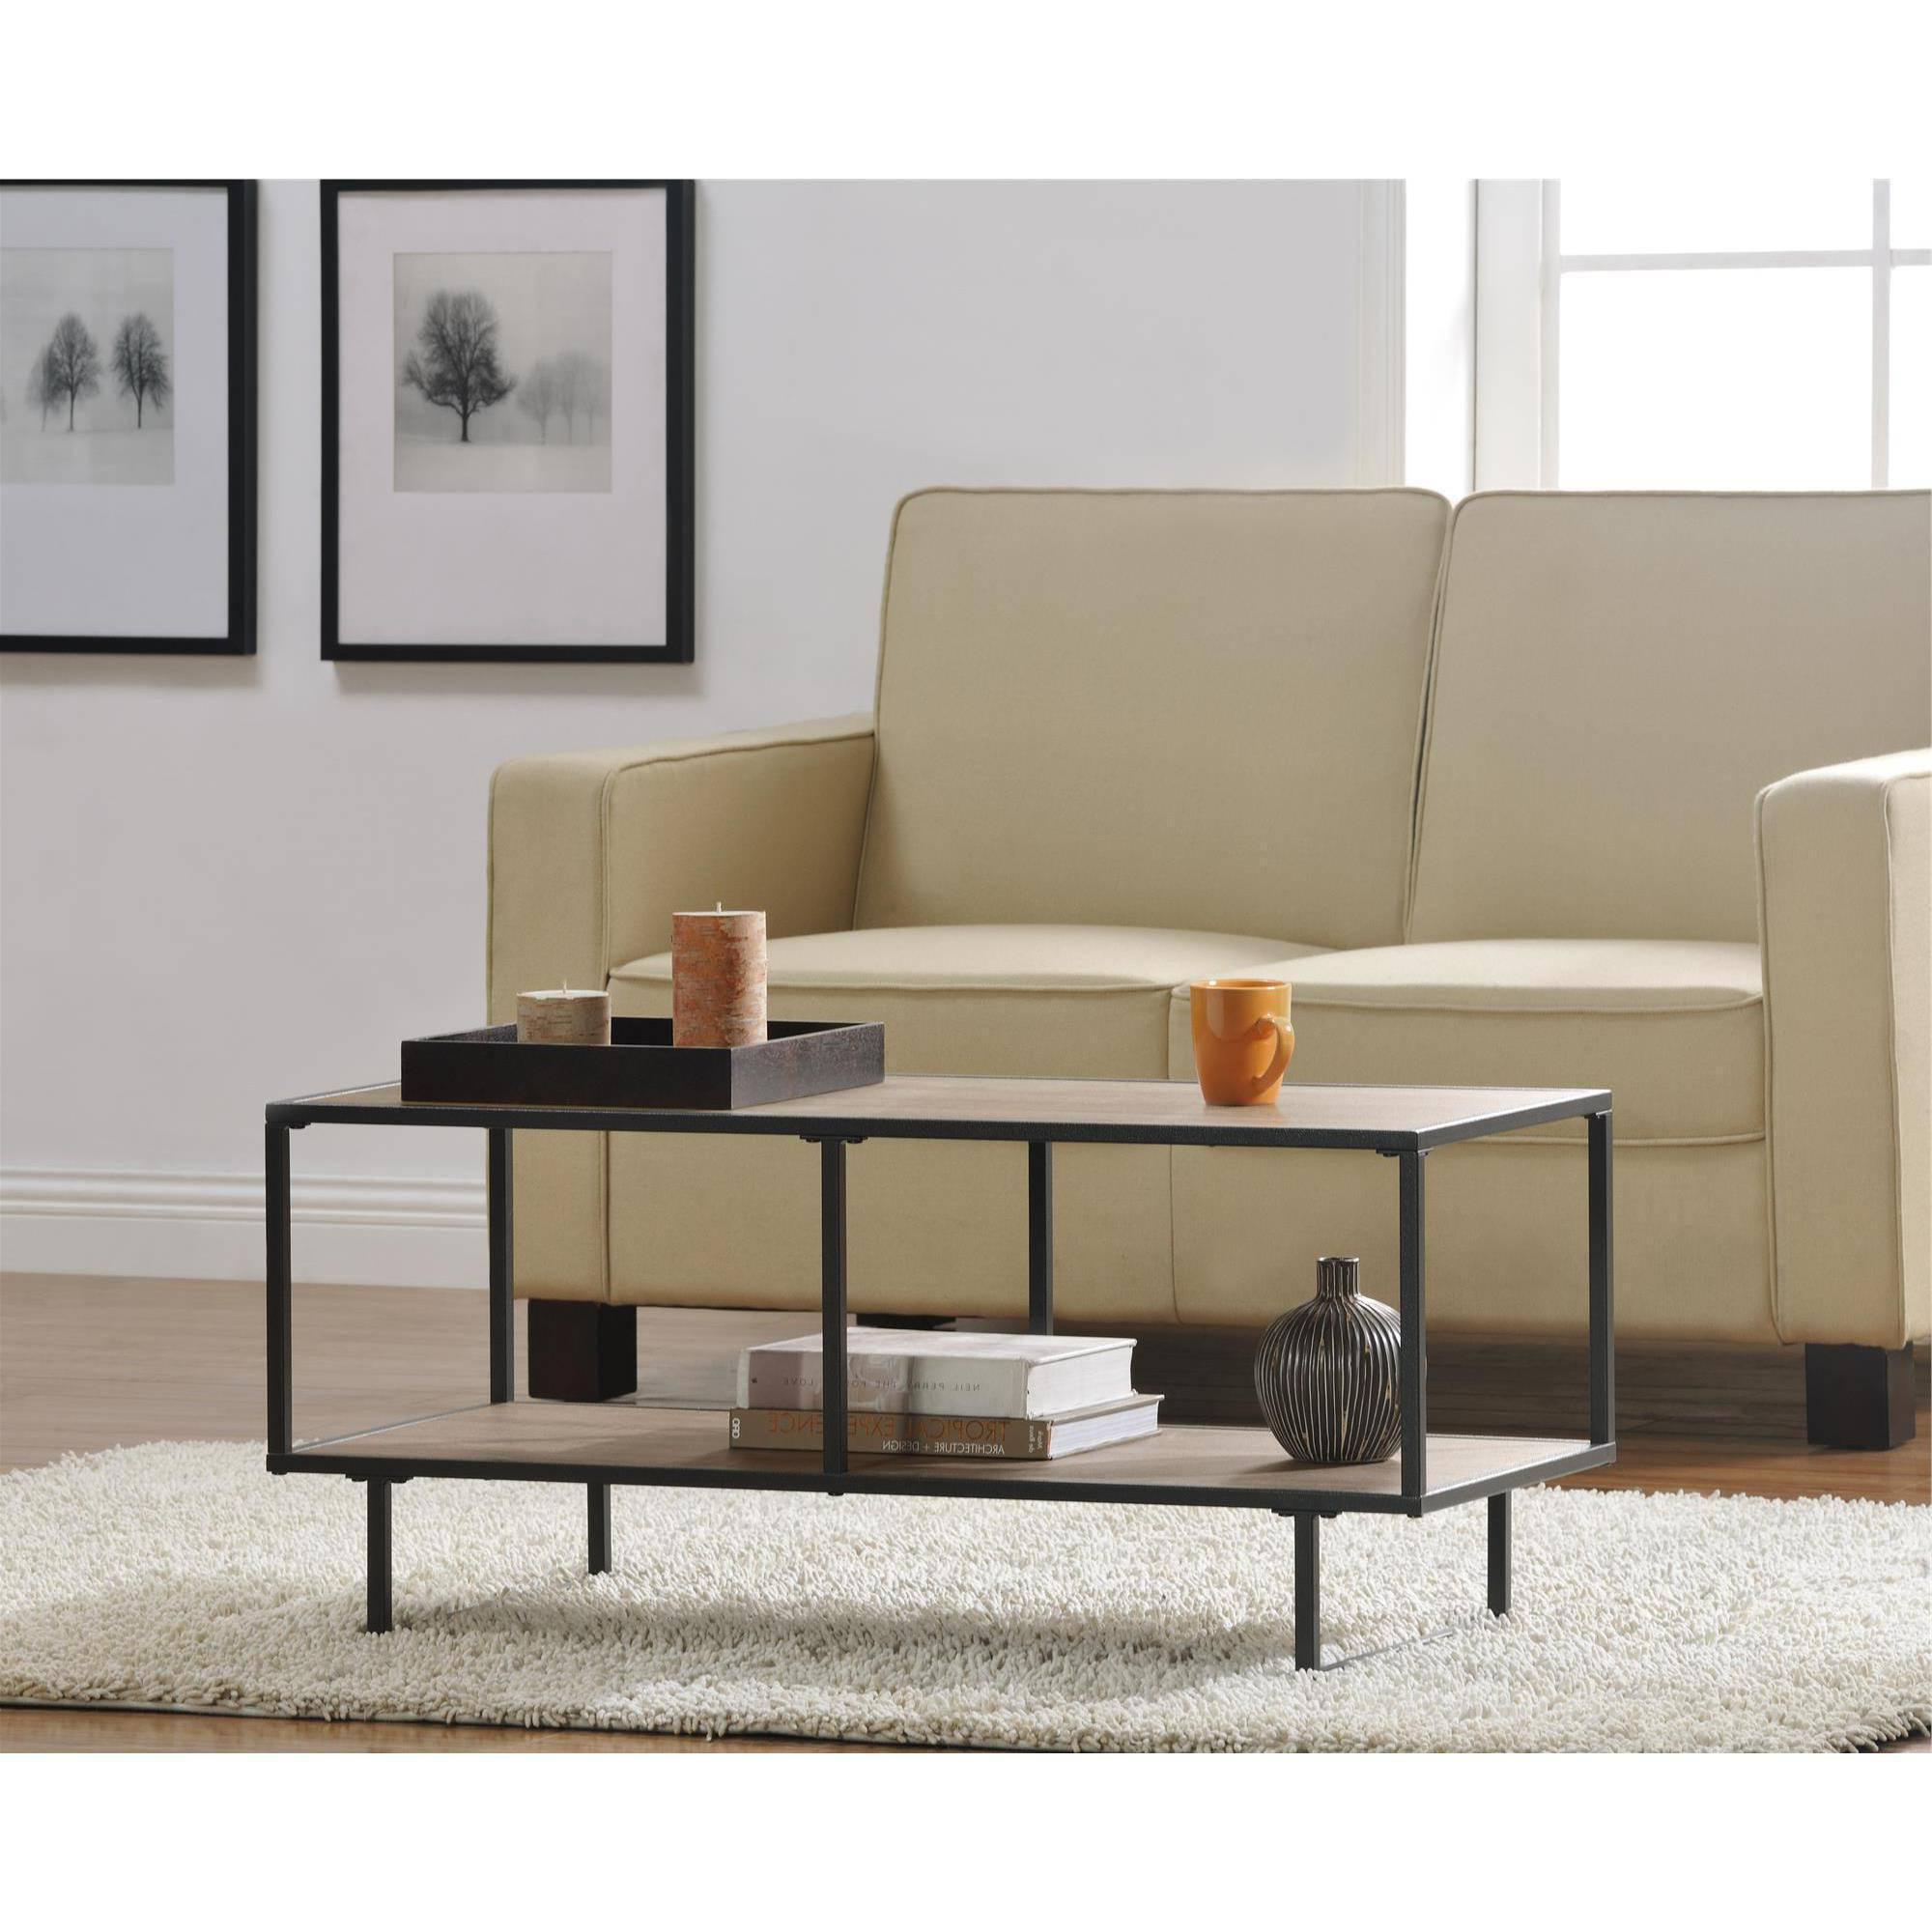 Newest Ameriwood Home Emmett Tv Stand/coffee Table – Walmart Within Coffee Tables And Tv Stands (View 8 of 20)